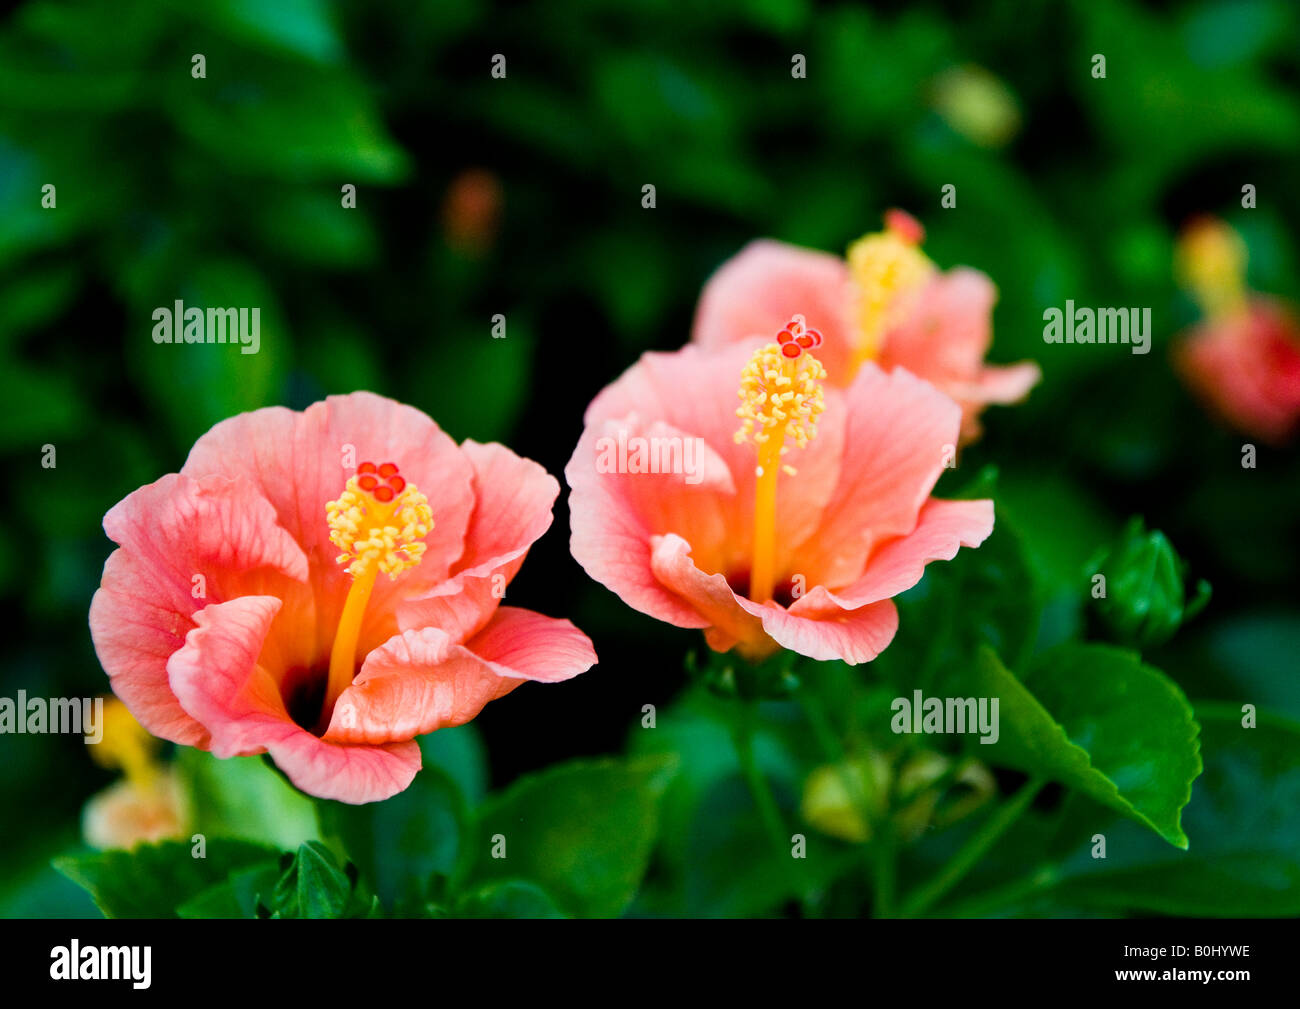 Dark green leaves the flowers are small and bell shaped stock photos deep pink hibiscus flowers at its best each with long central tube carrying yellow stamens and mightylinksfo